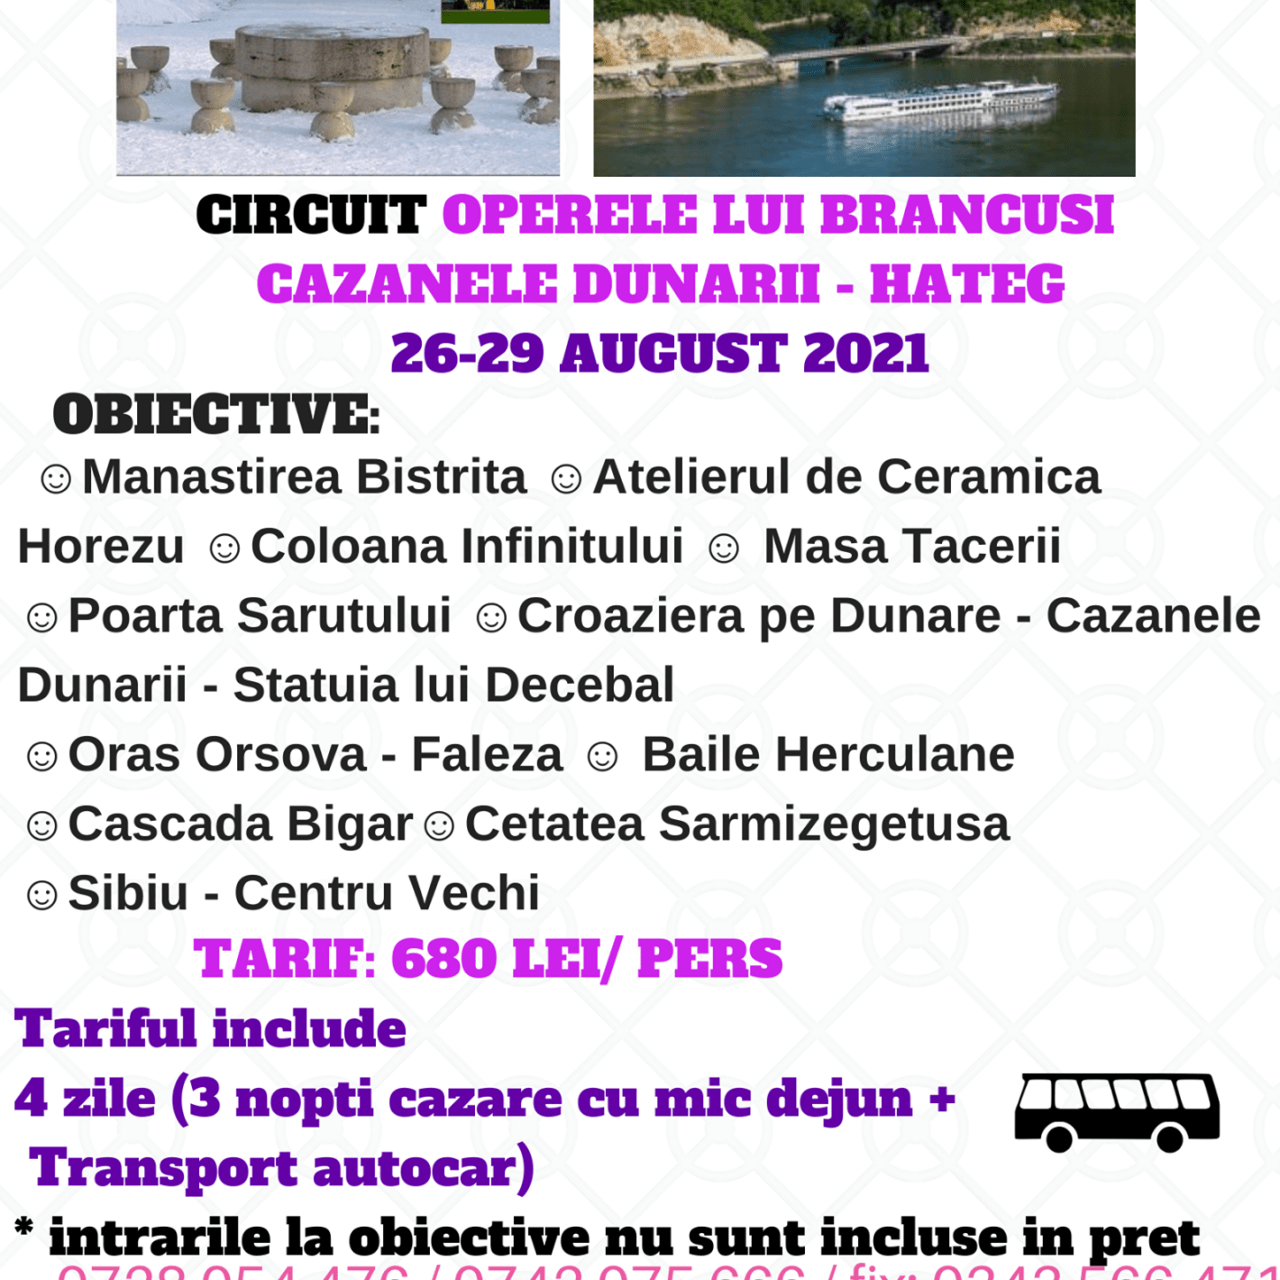 https://www.secomitravel.ro/wp-content/uploads/2020/11/127457378_177331220715909_7198929101817491456_n-1280x1280.png